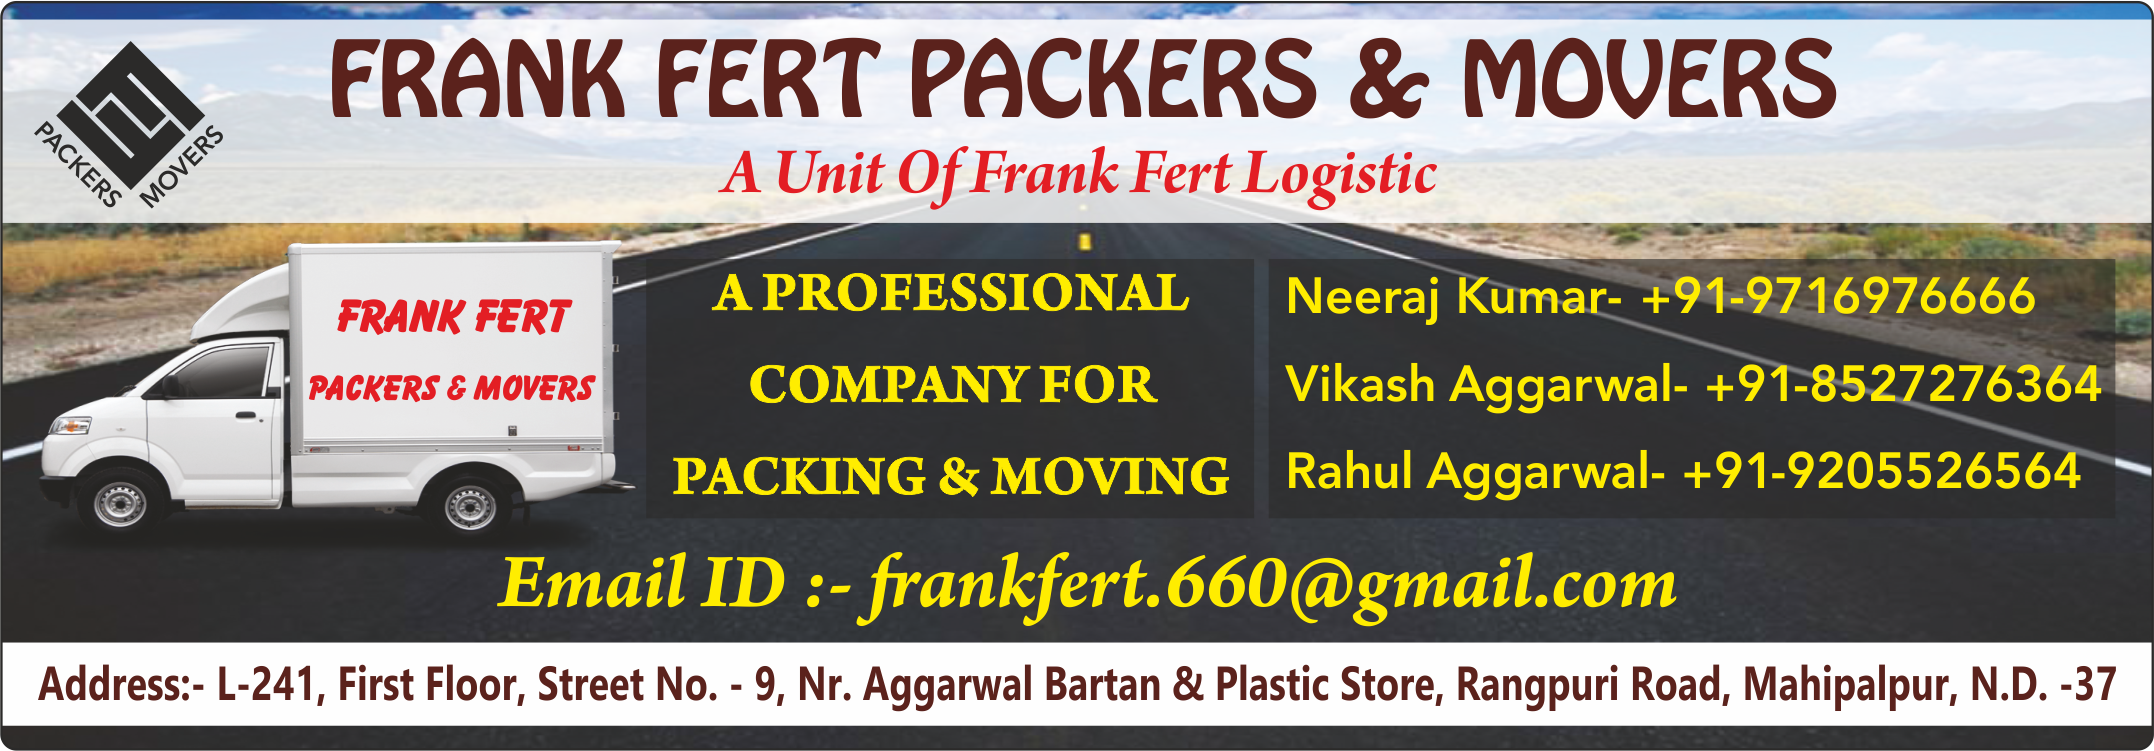 FRANK FERT PACKERS & MOVERS